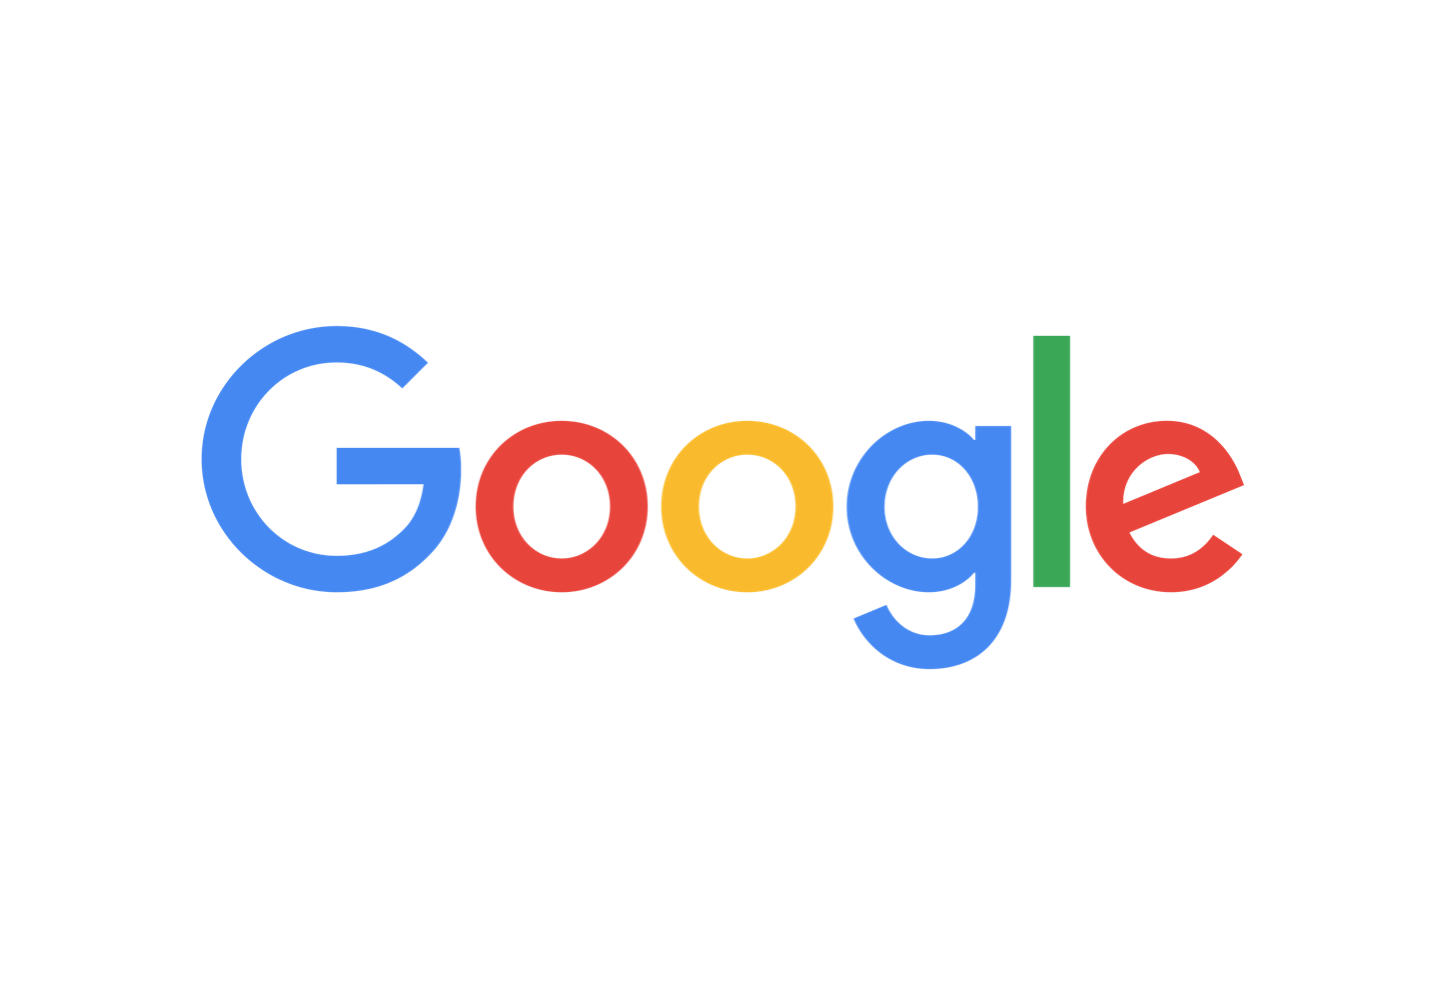 Google Launches AdWords & AdSense Support For Bengali, Language Spoken By Over 200m